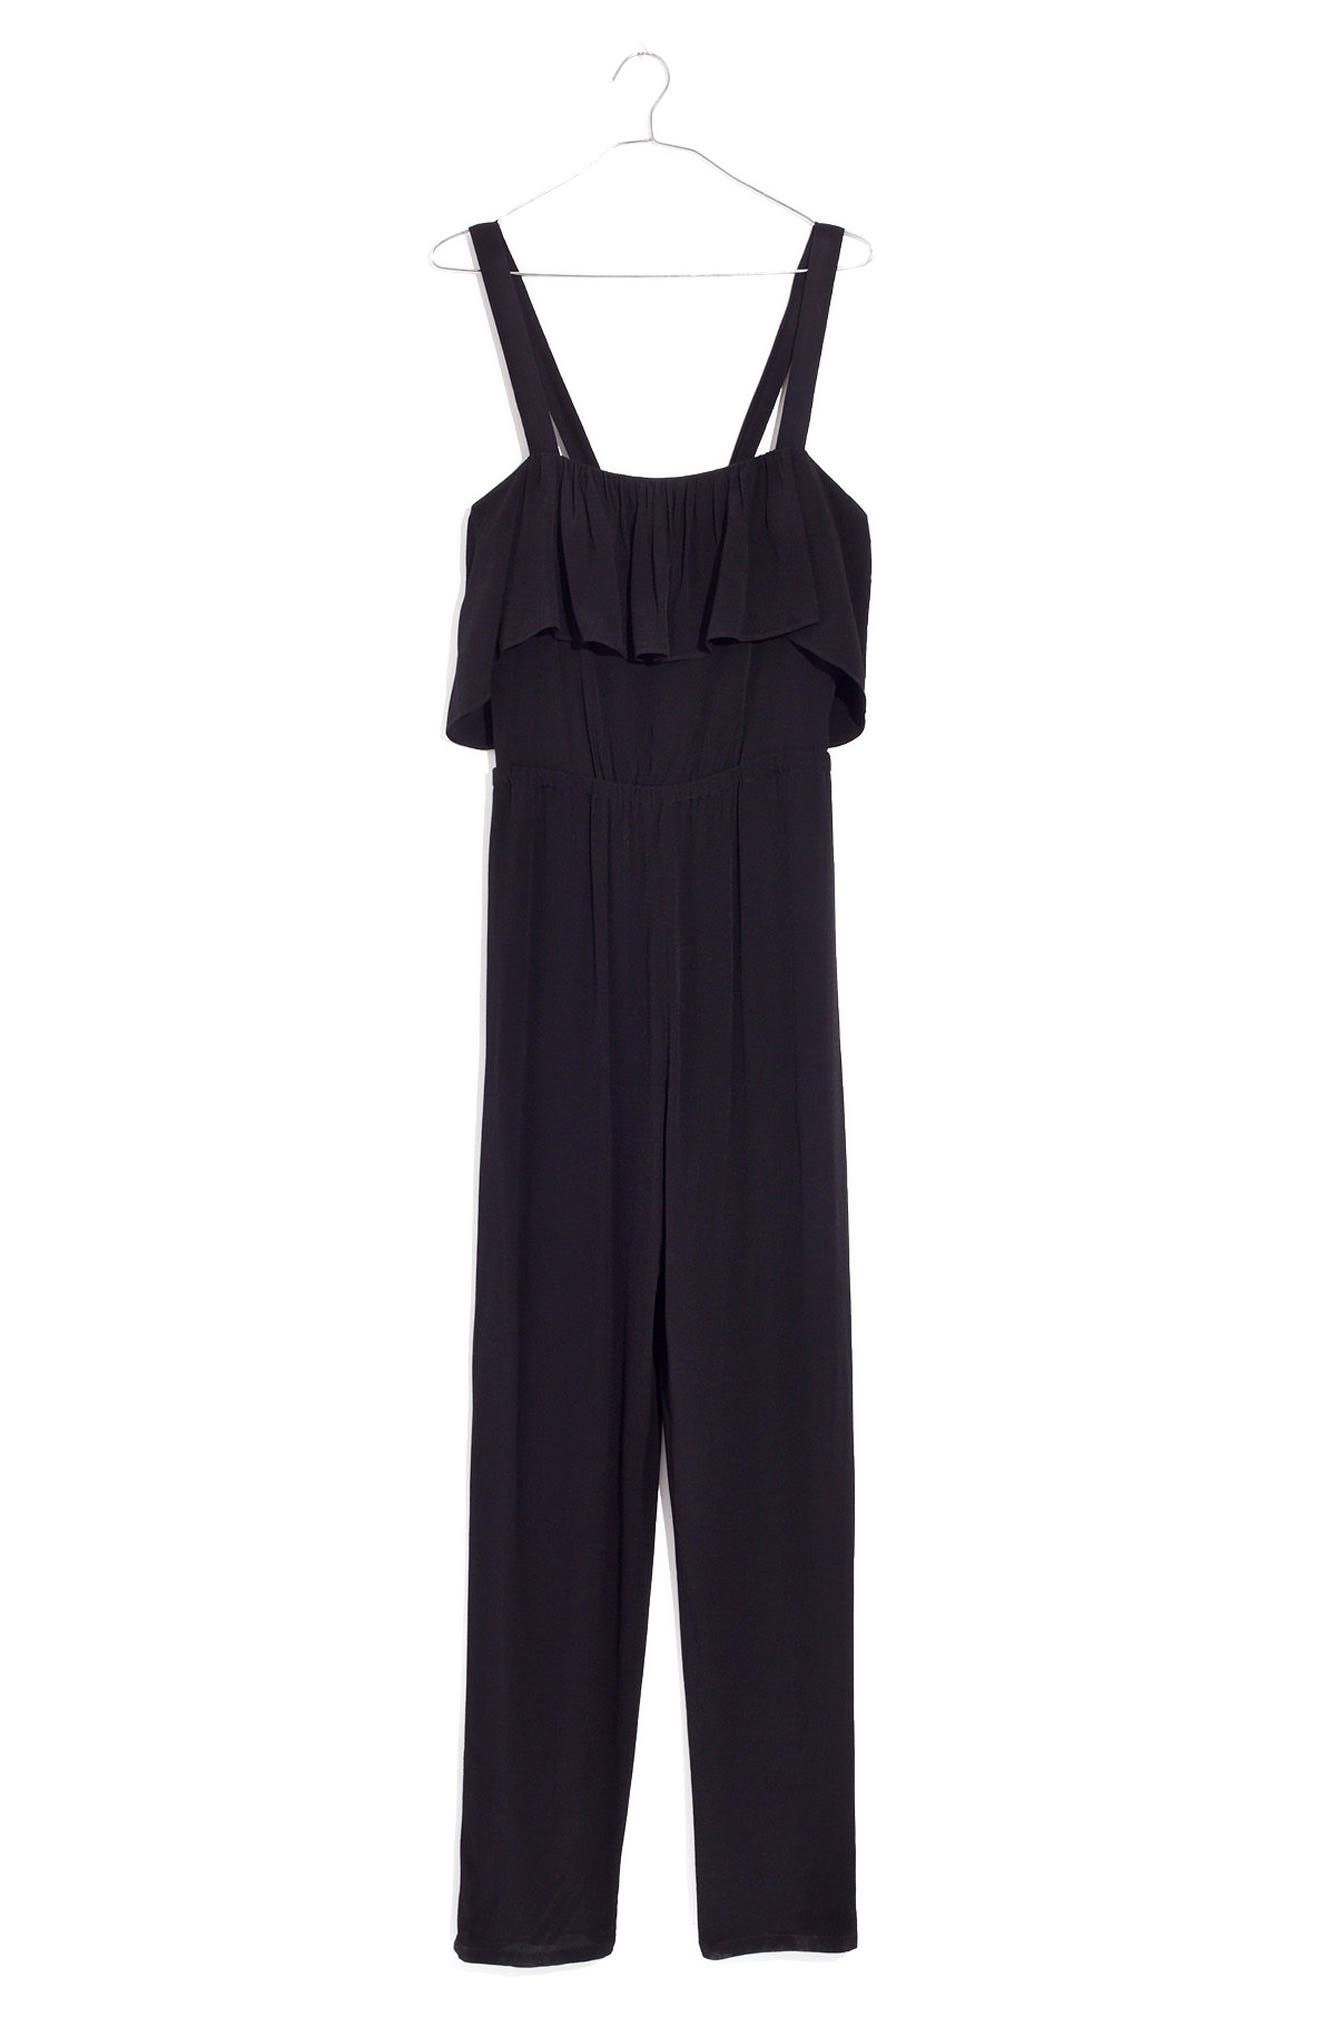 Apron Ruffle Jumpsuit,                             Alternate thumbnail 4, color,                             001